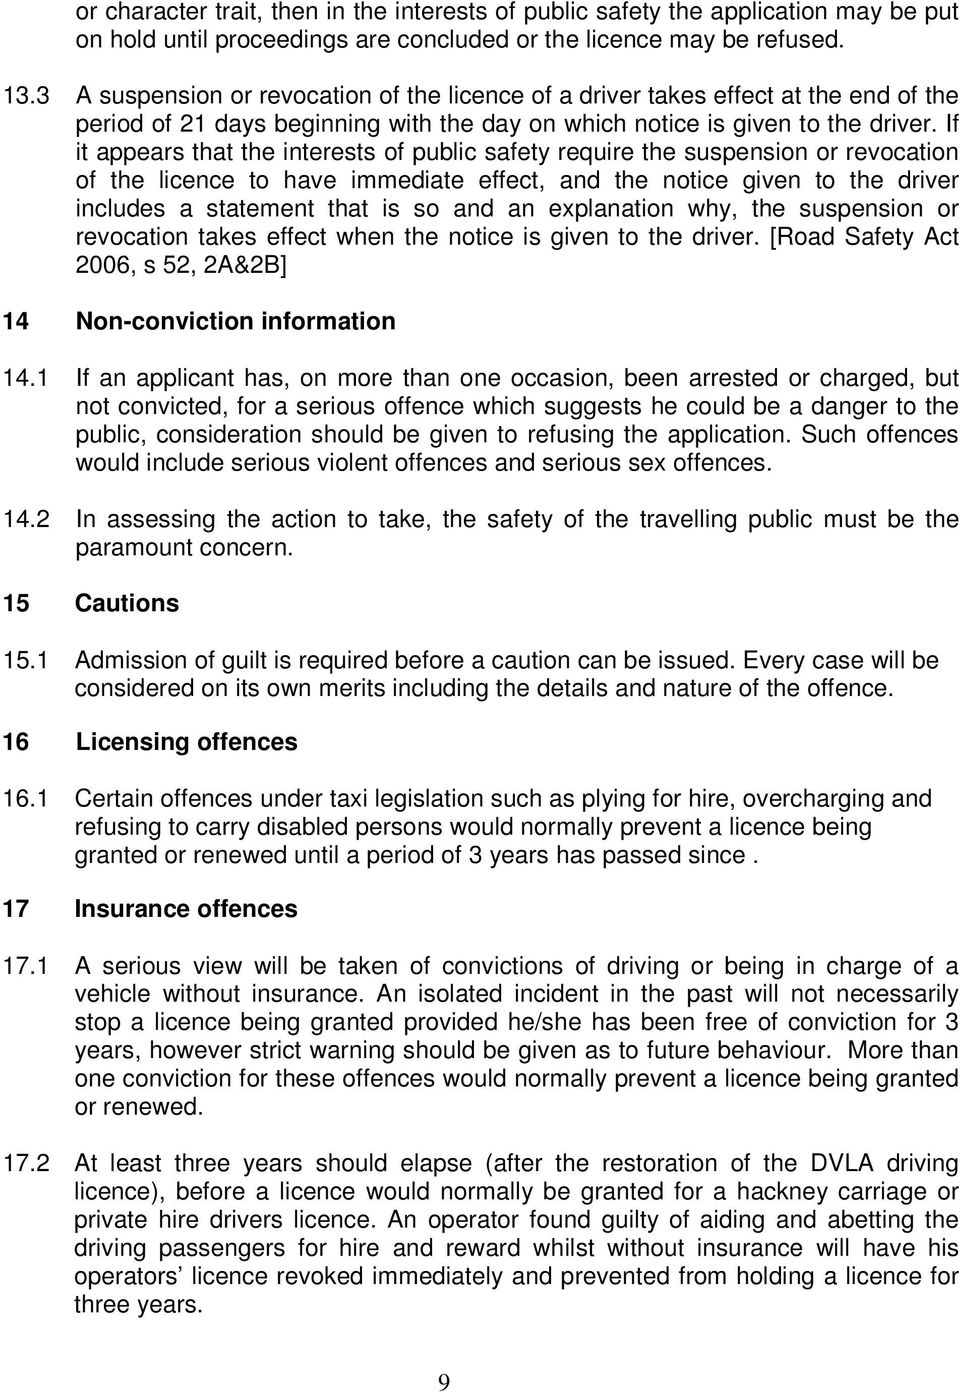 If it appears that the interests of public safety require the suspension or revocation of the licence to have immediate effect, and the notice given to the driver includes a statement that is so and